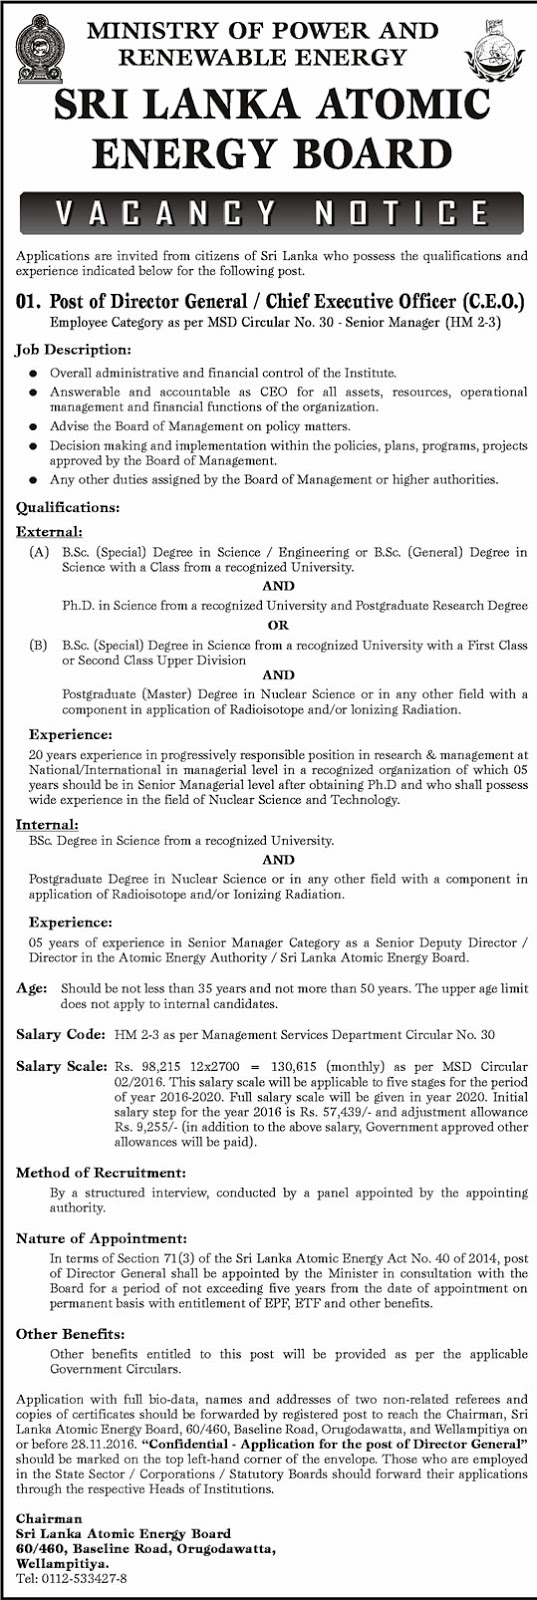 Sri Lankan Government Job Vacancies at Sri Lanka Atomic Energy Board - Ministry of Power and Renewable Energy